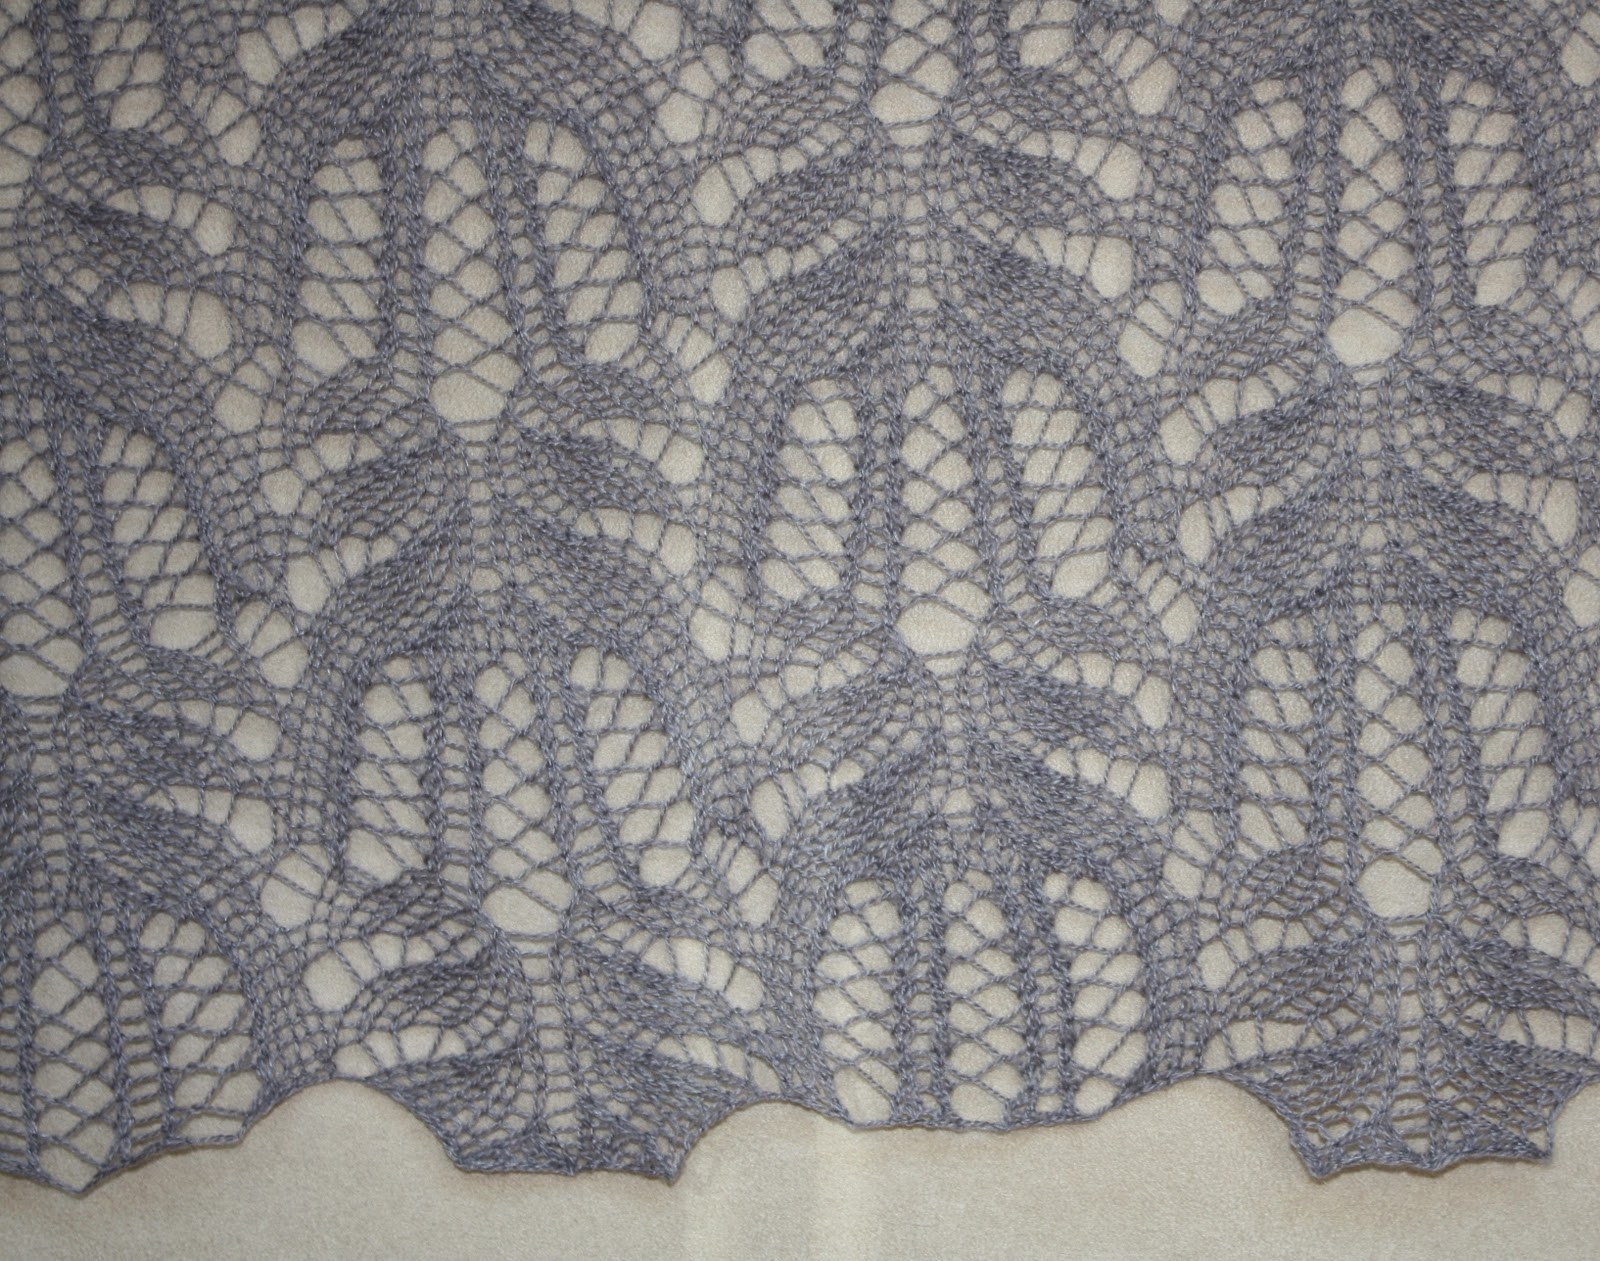 Knitted Lace Pattern : All Knitted Lace: Frost Flowers Lace Pattern